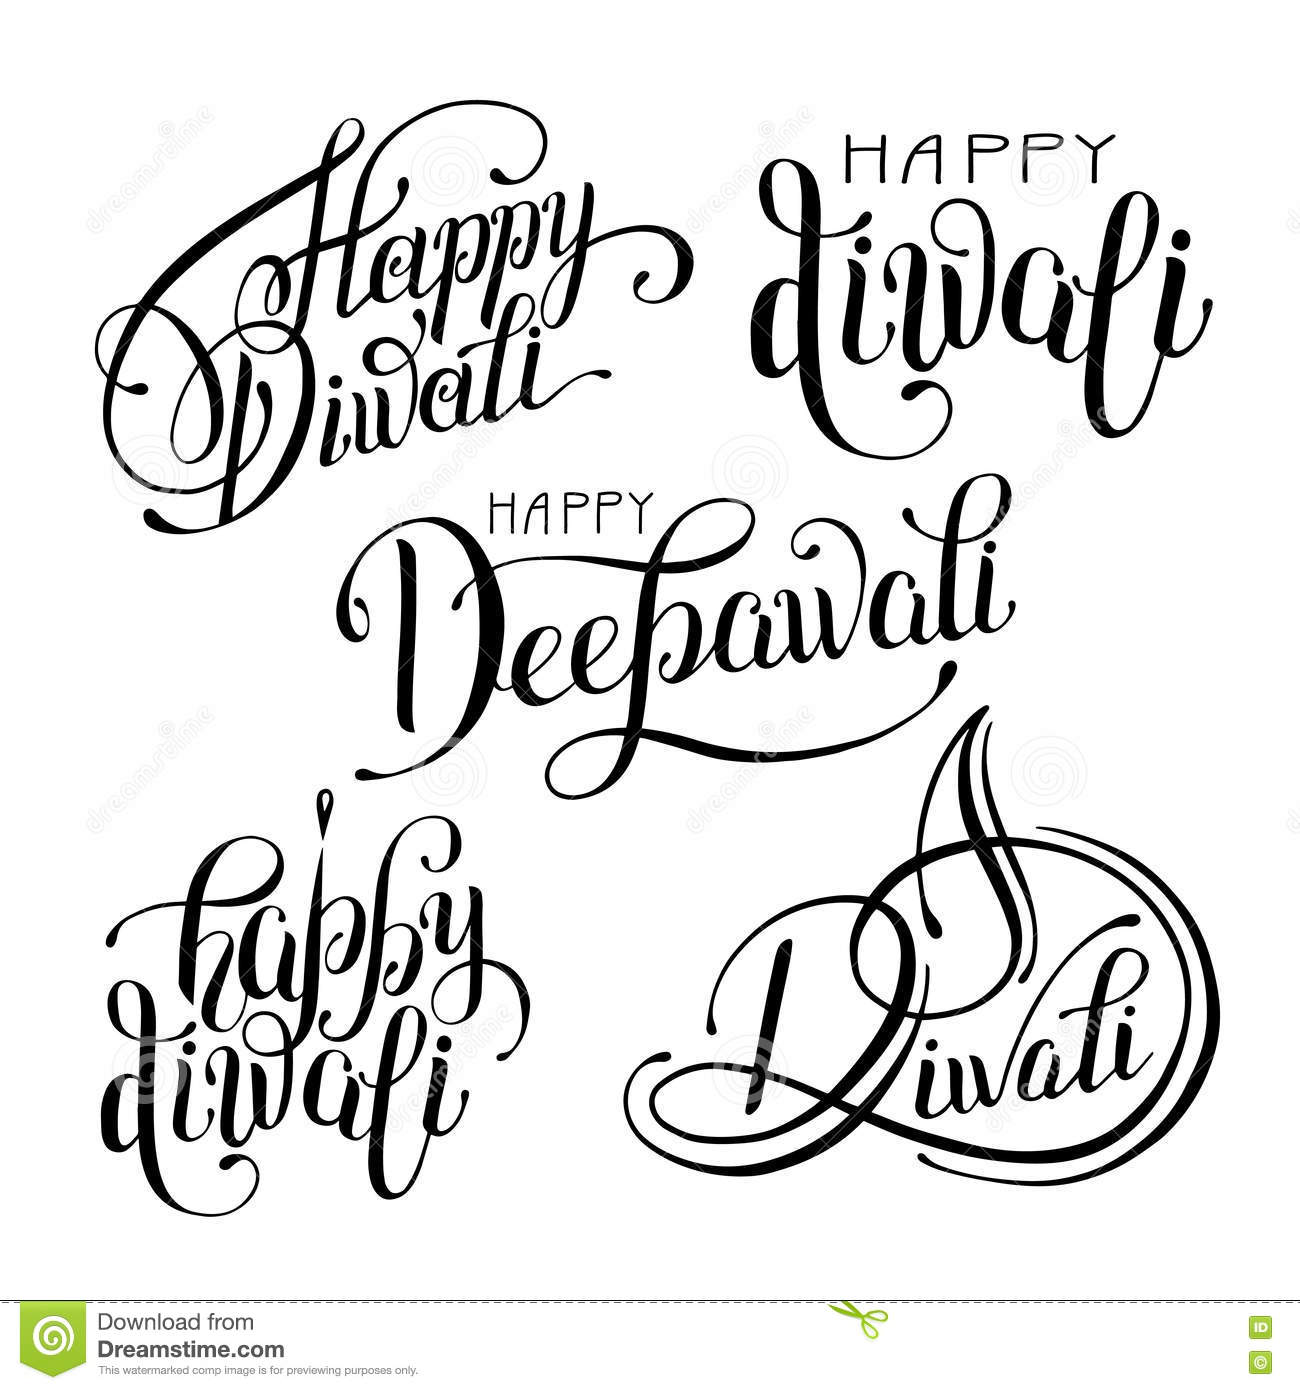 Black And White Hand Drawing Design Element Lettering Stock Vector ... for Diwali Festival Black And White Images  289ifm